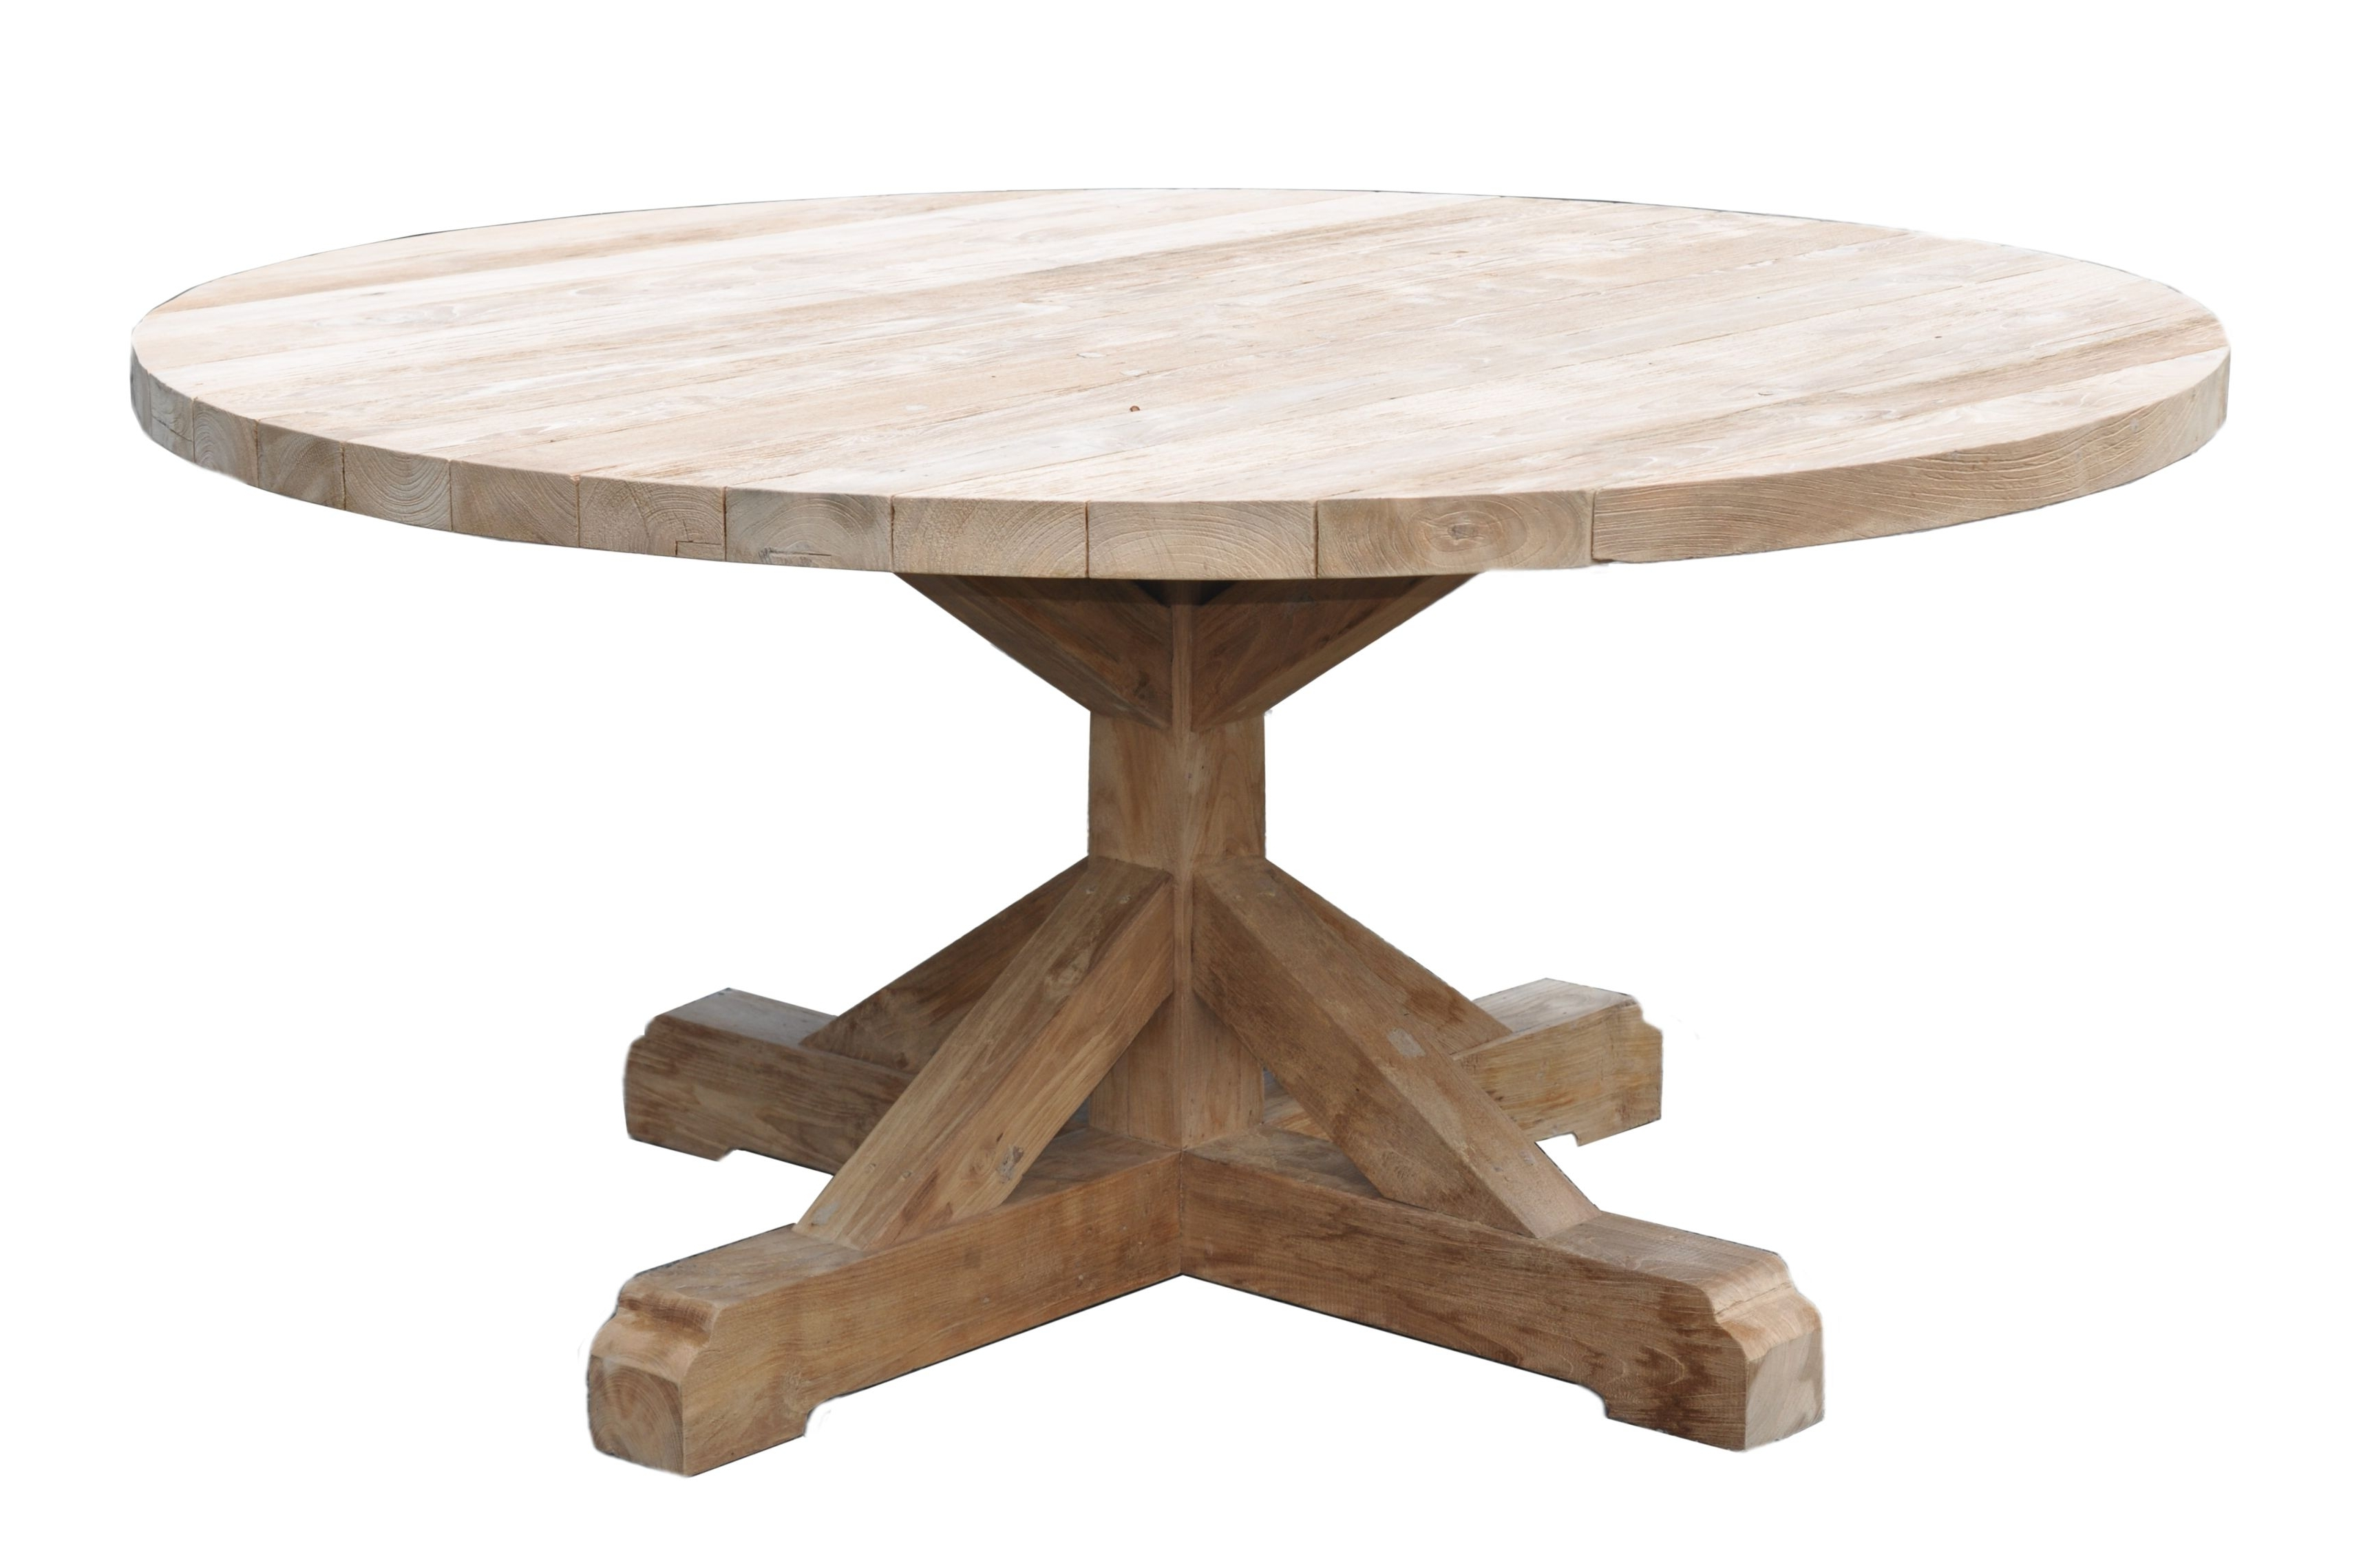 Round Teak Dining Tables With Regard To Well Liked Outdoor Round Reclaimed Teak Dining Table – Mecox Gardens (View 4 of 25)